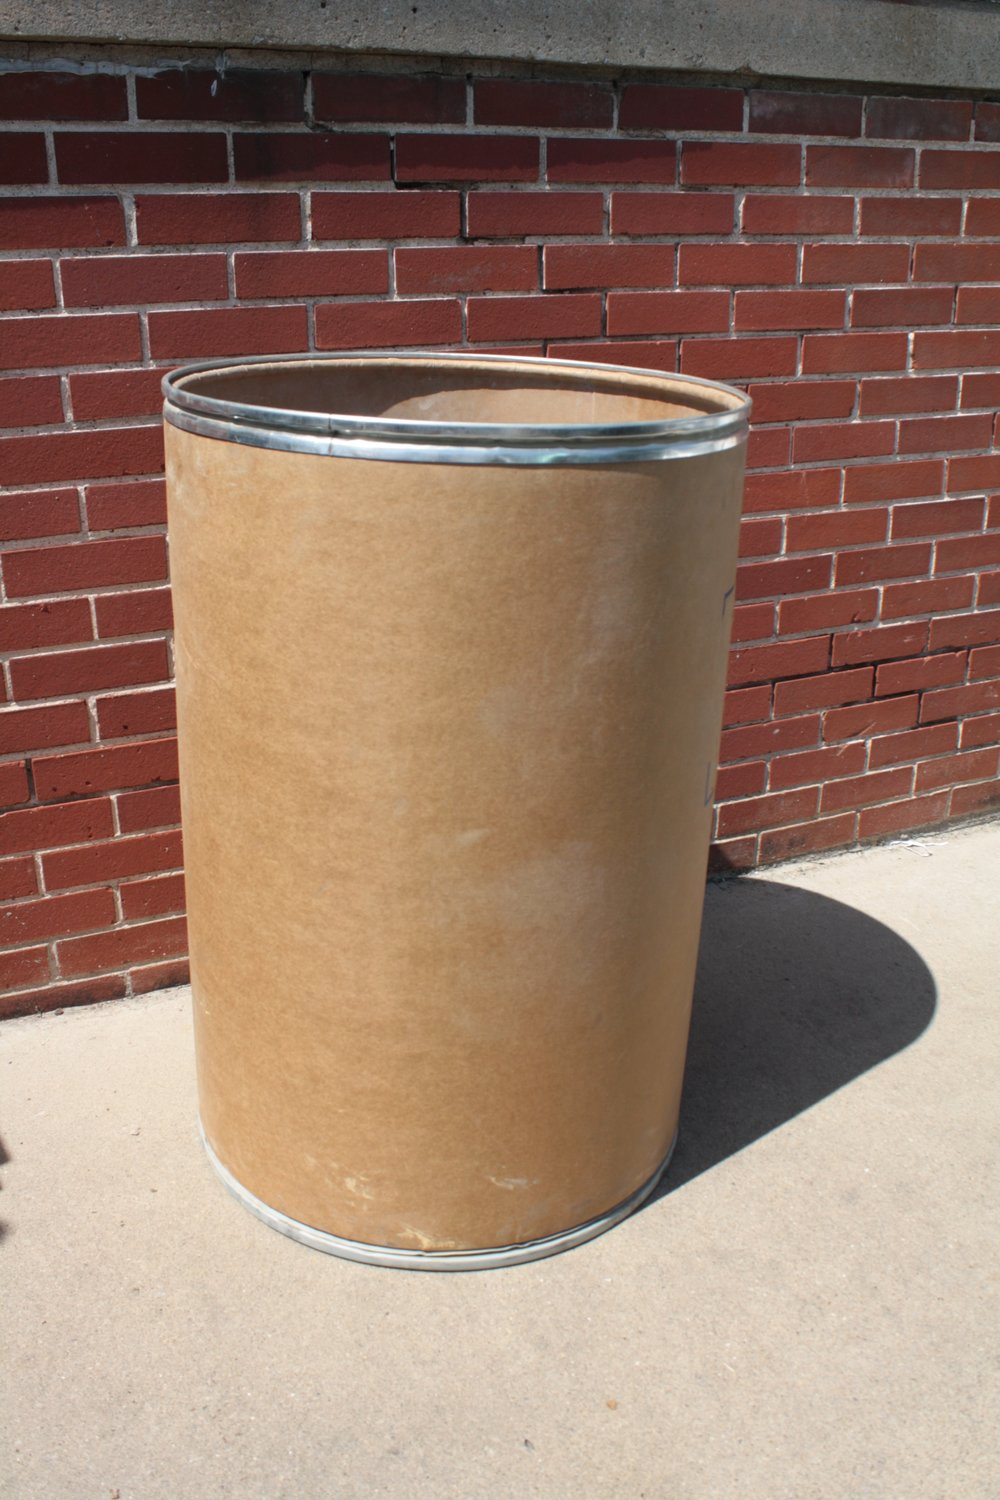 55 gallon cardboard drum.jpg